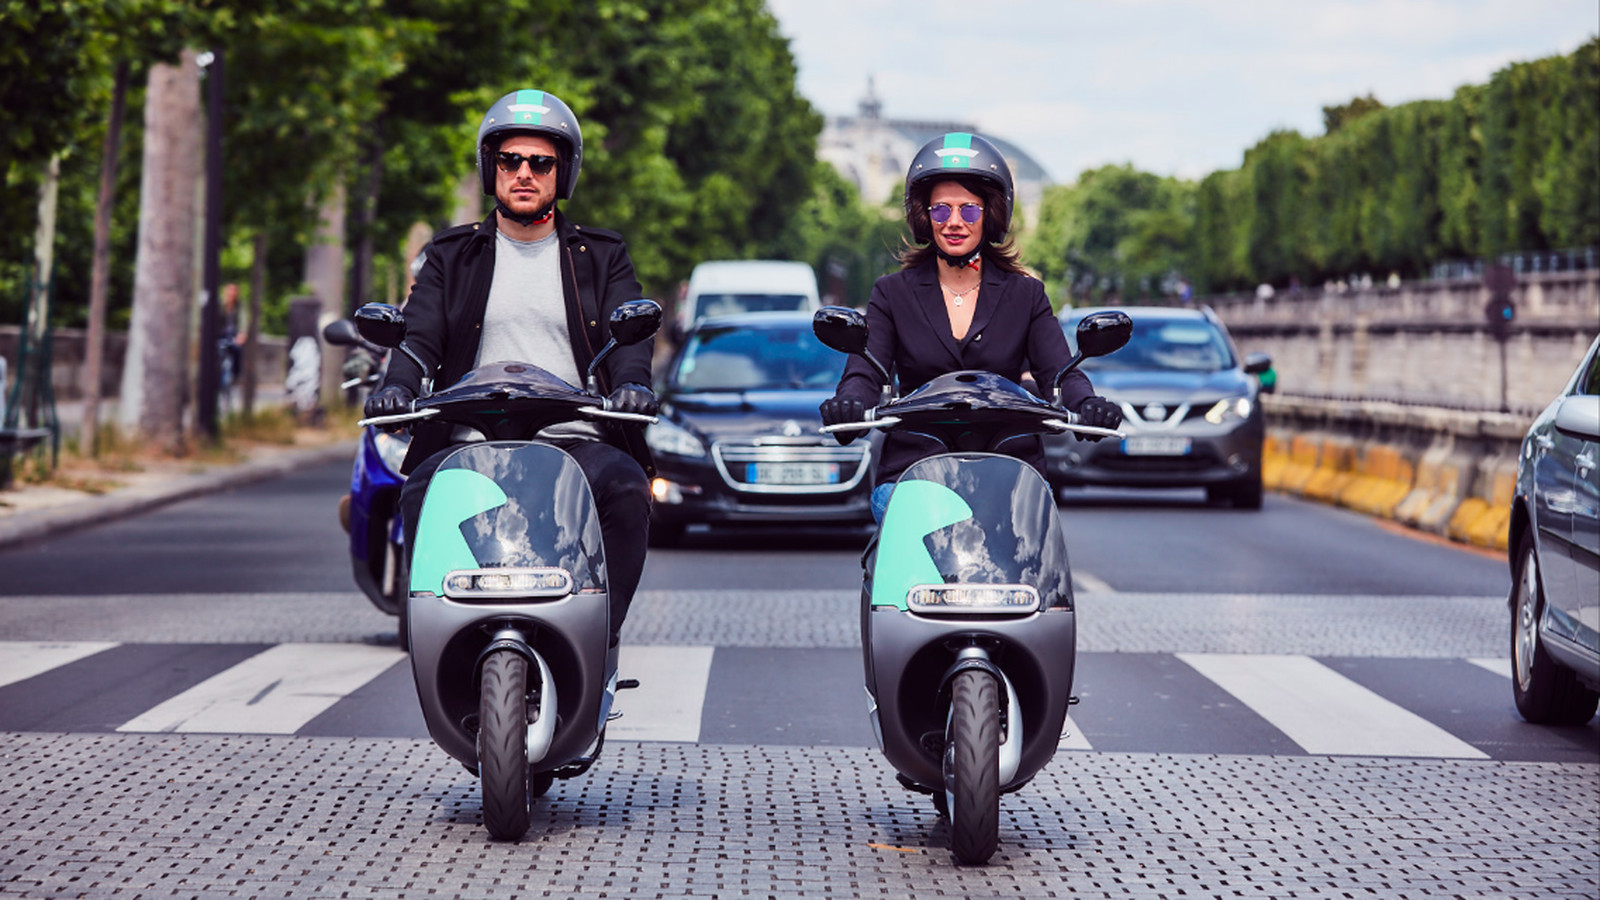 gogoro u2019s sleek electric scooters are now available to rent